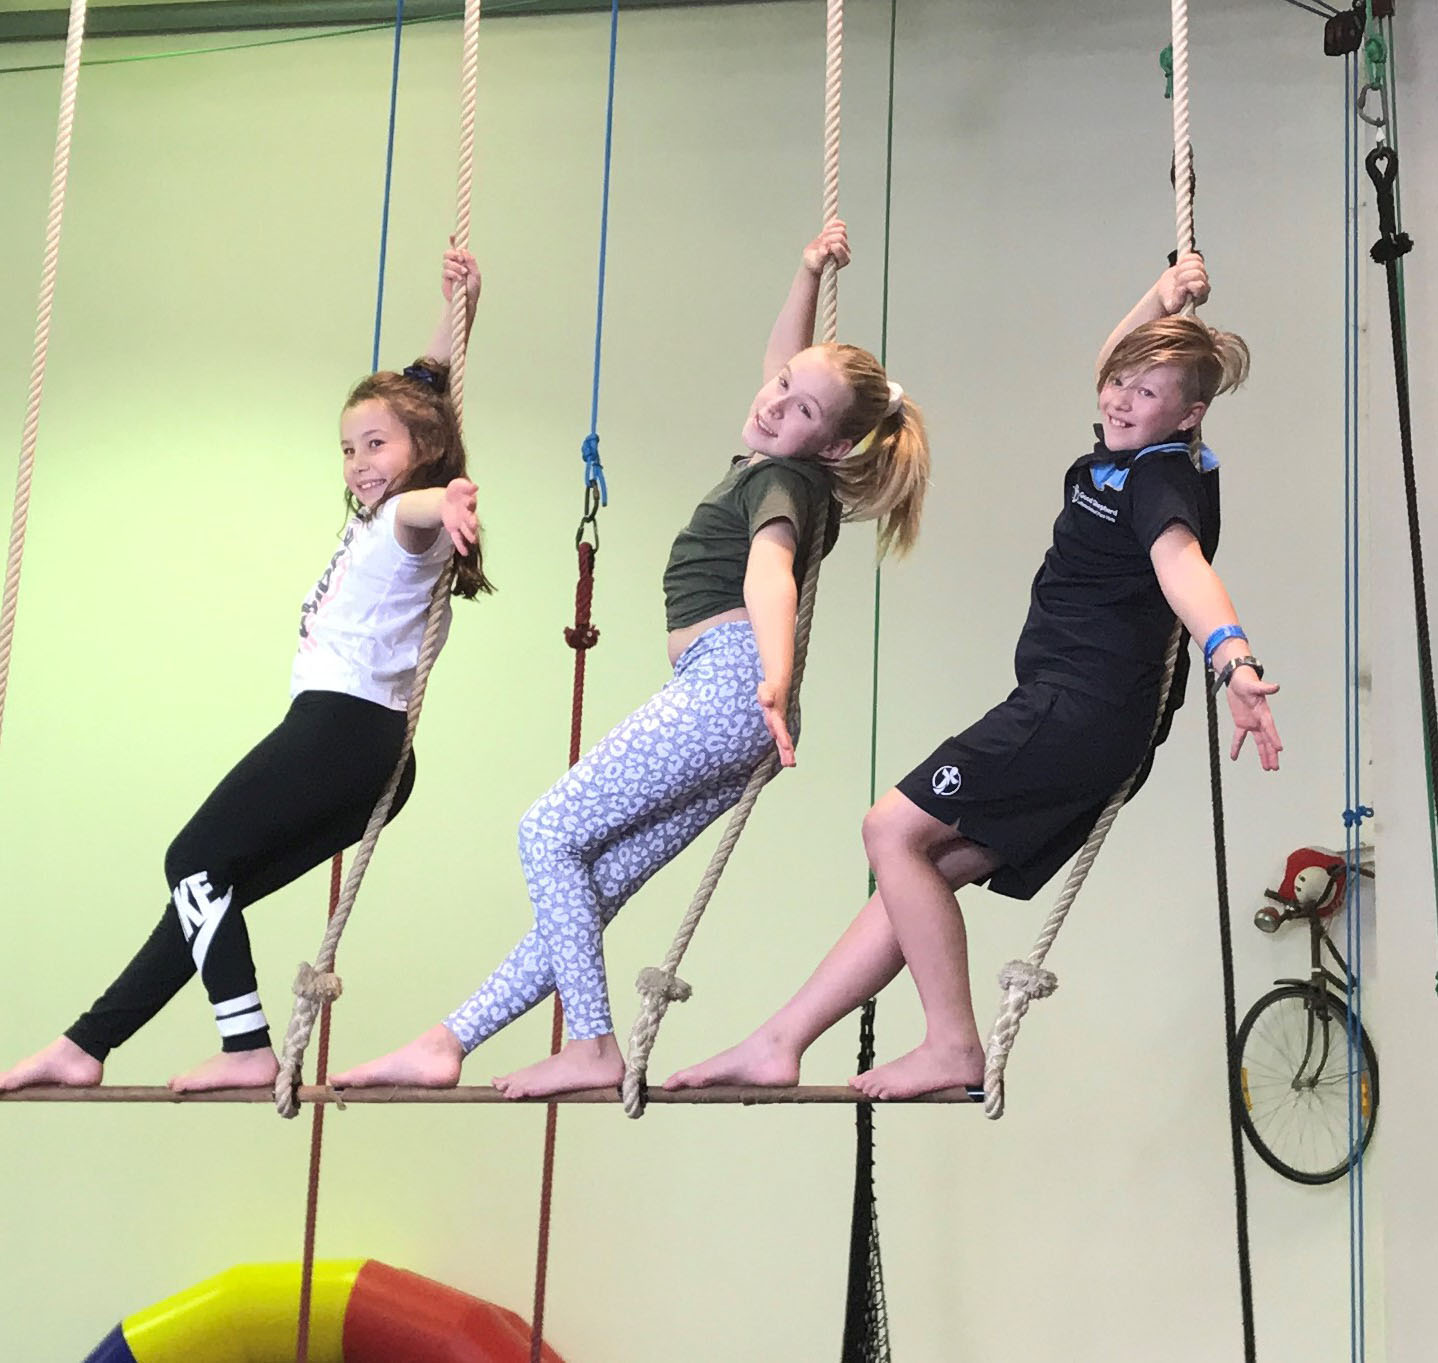 Gracie, 8, Georgina, 10 and Akira, 9 at Cirkidz